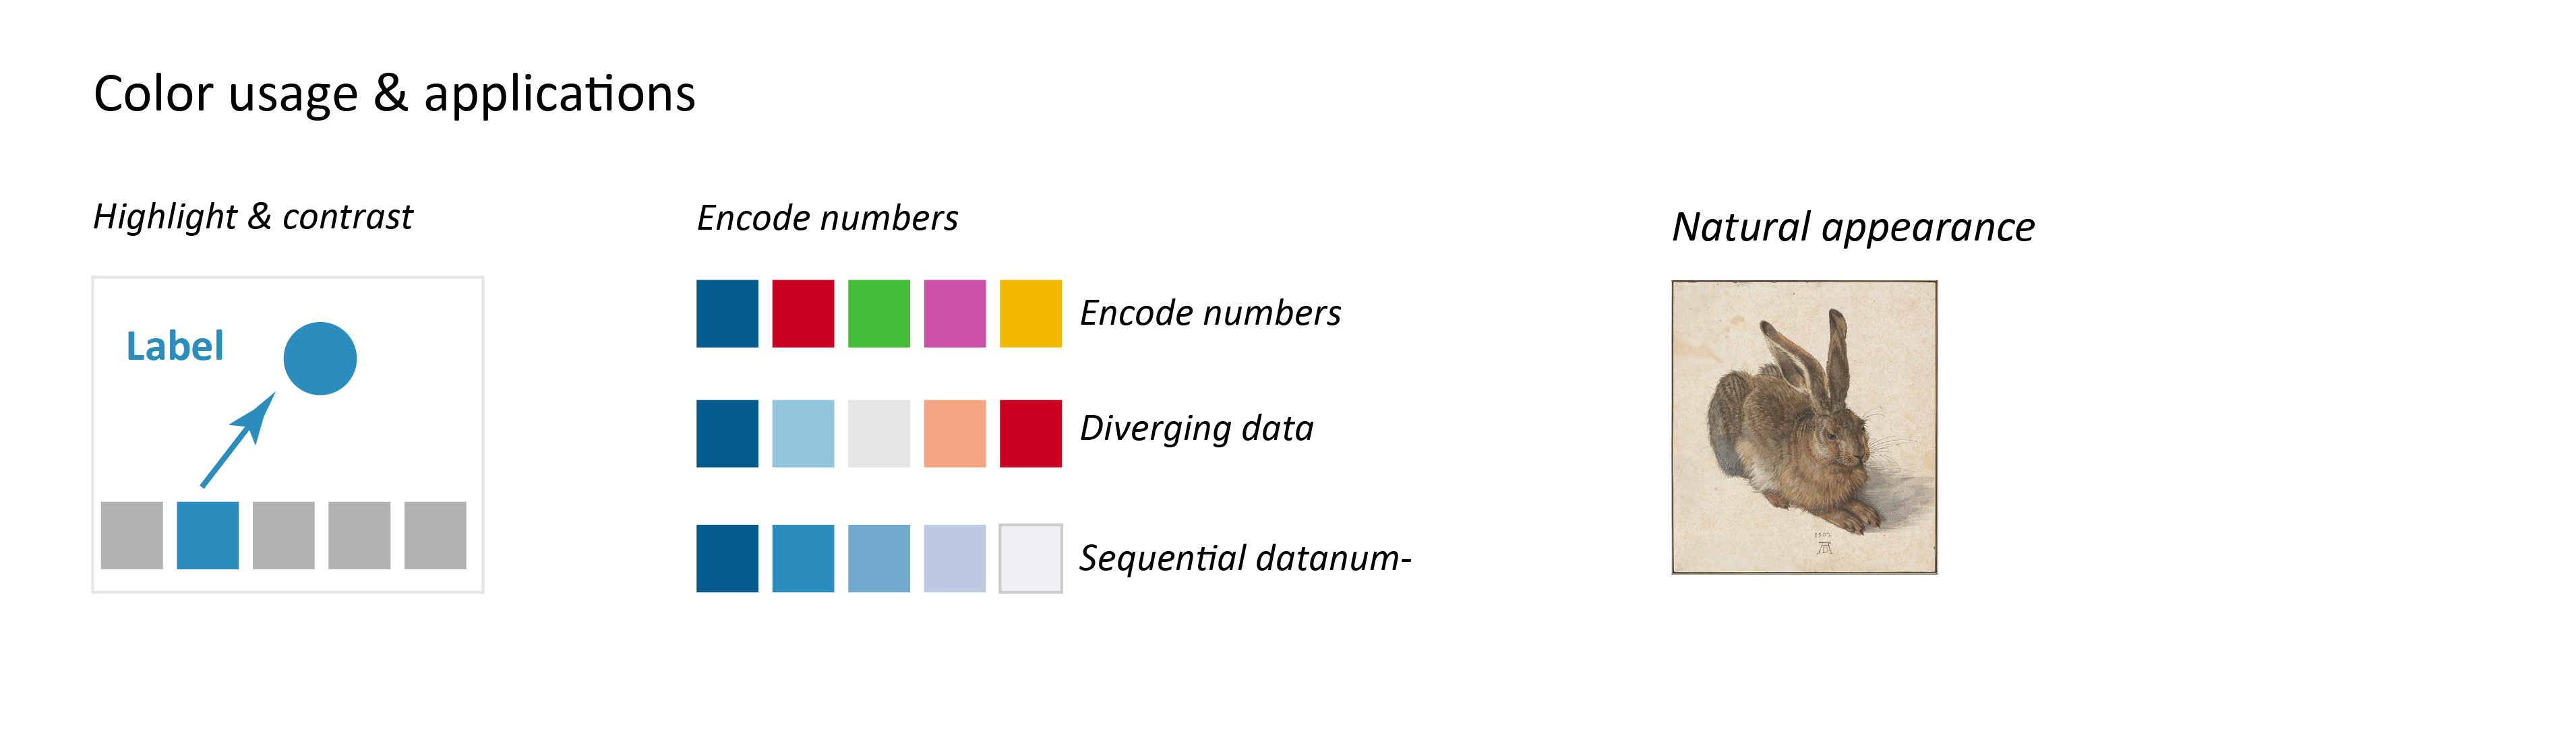 Color usage in Graphical Abstracts